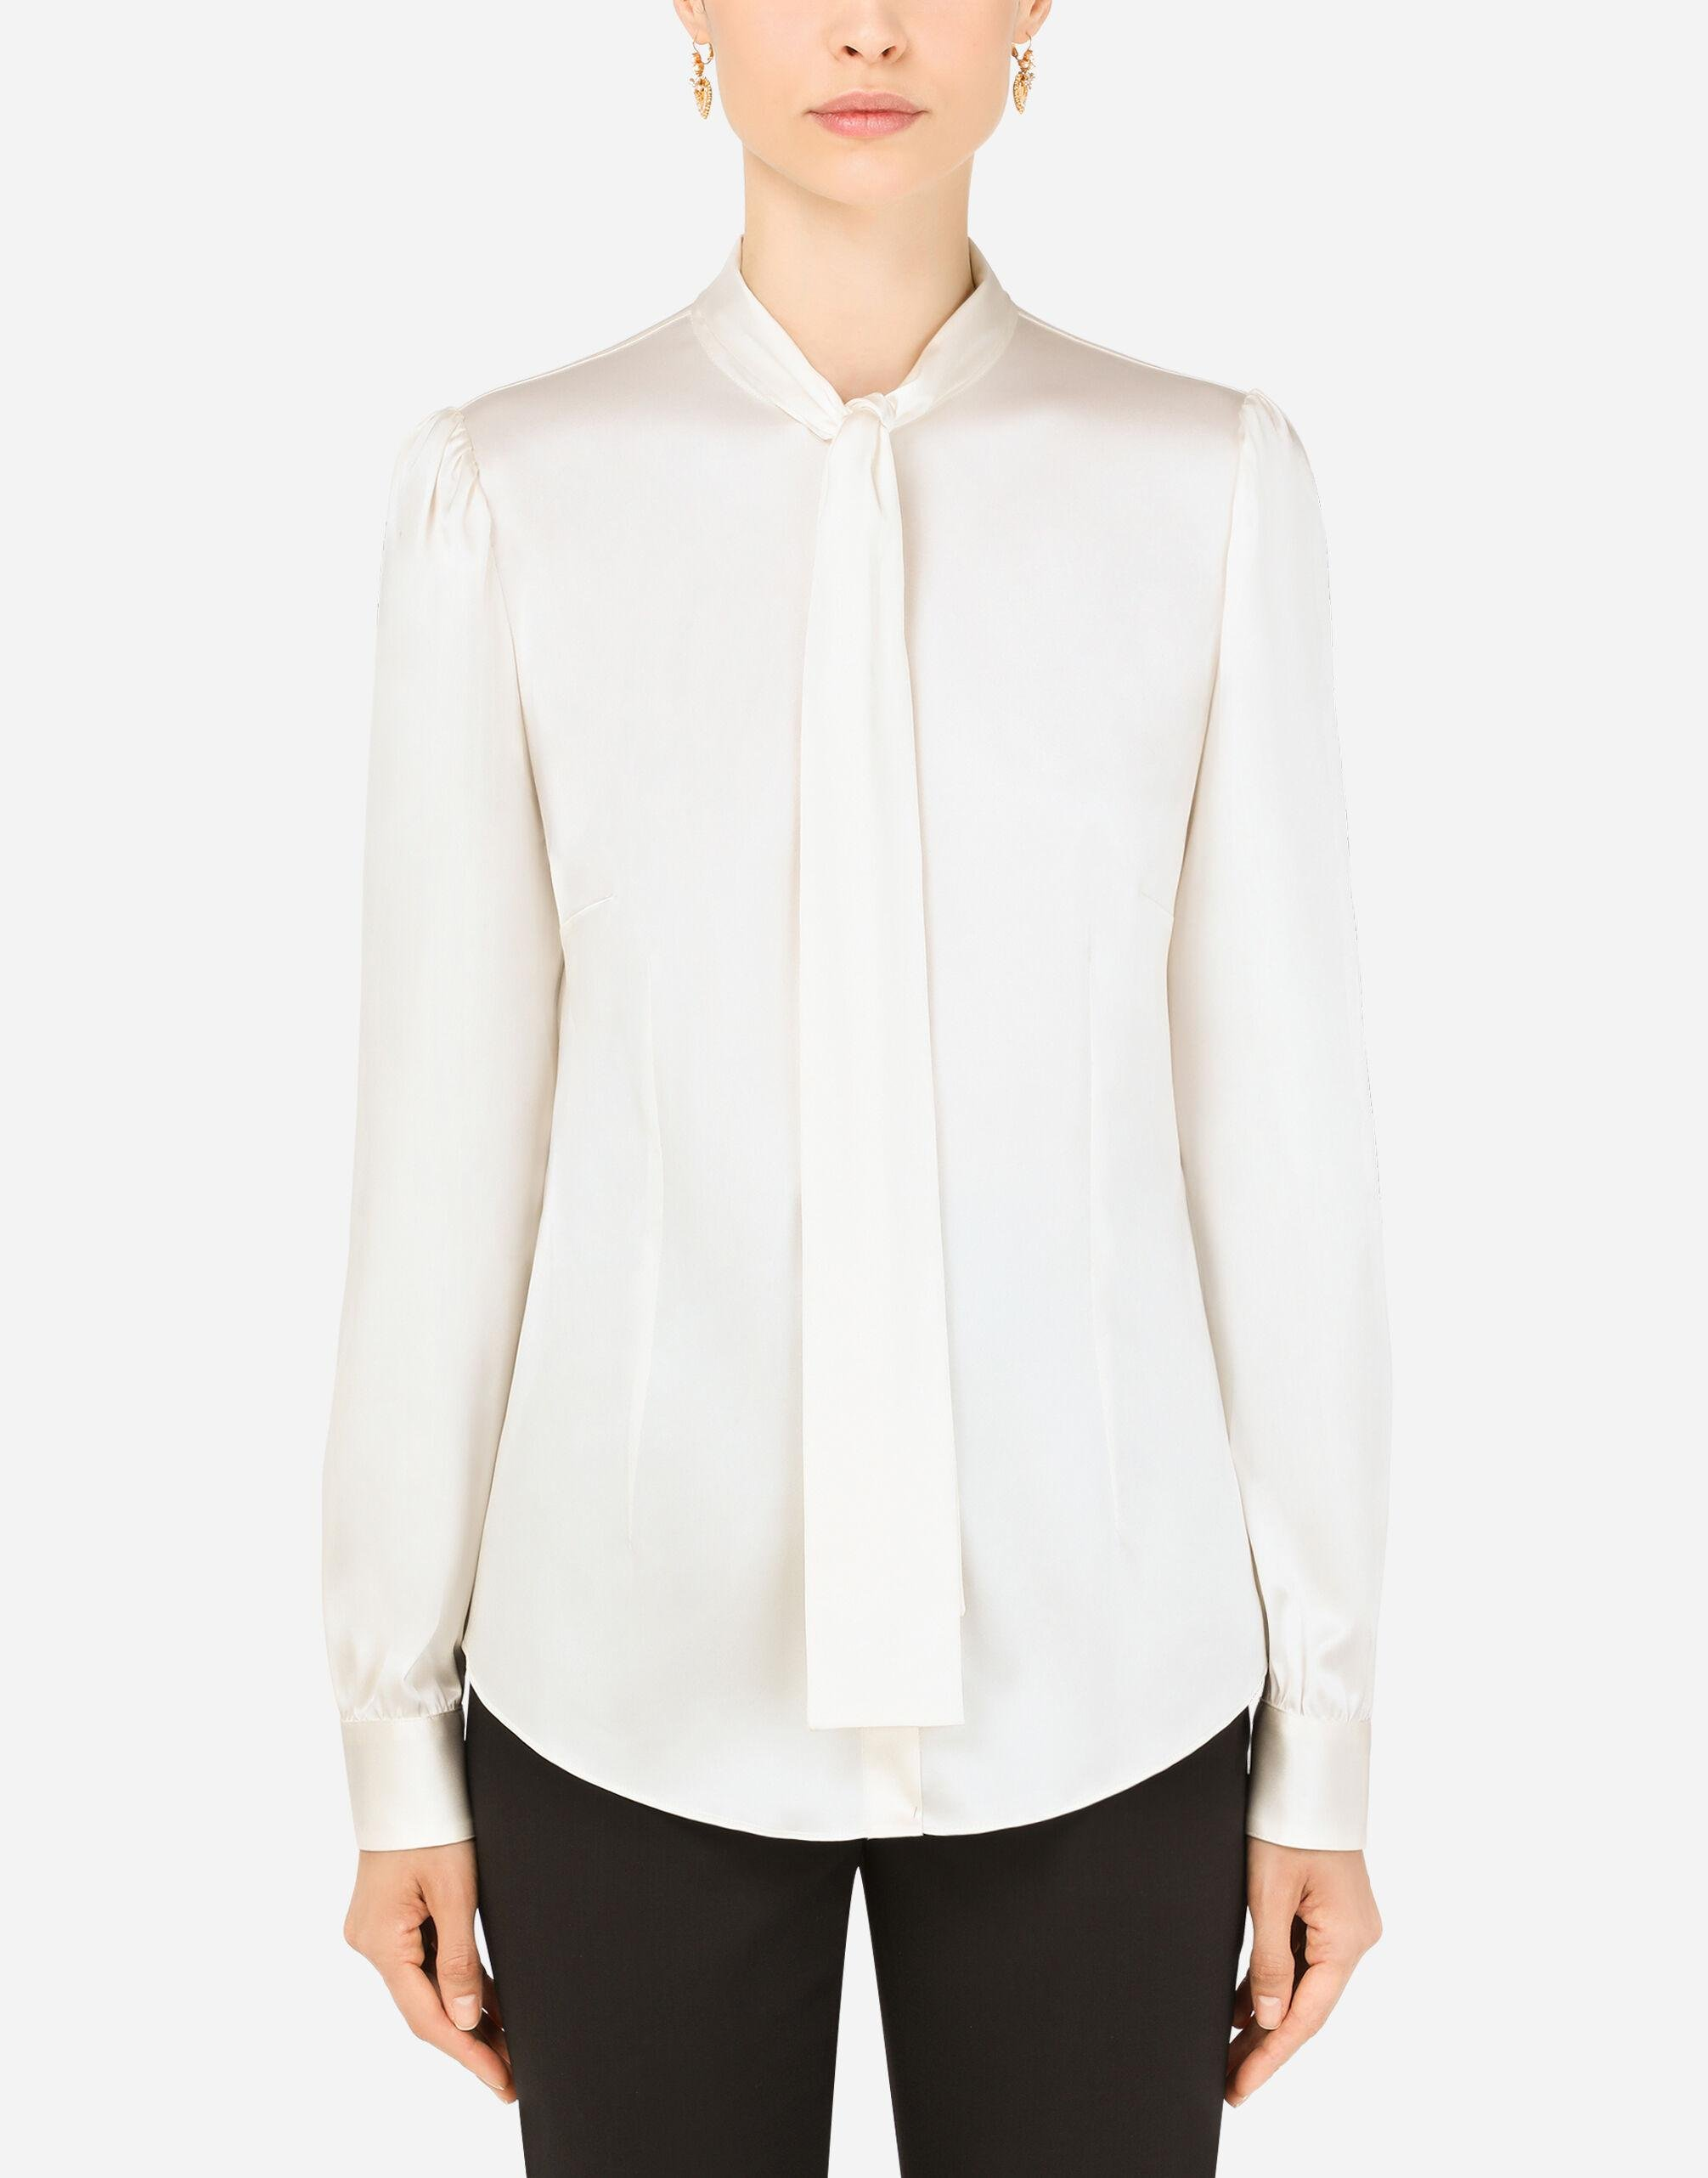 Satin shirt with pearl buttons with DG logo